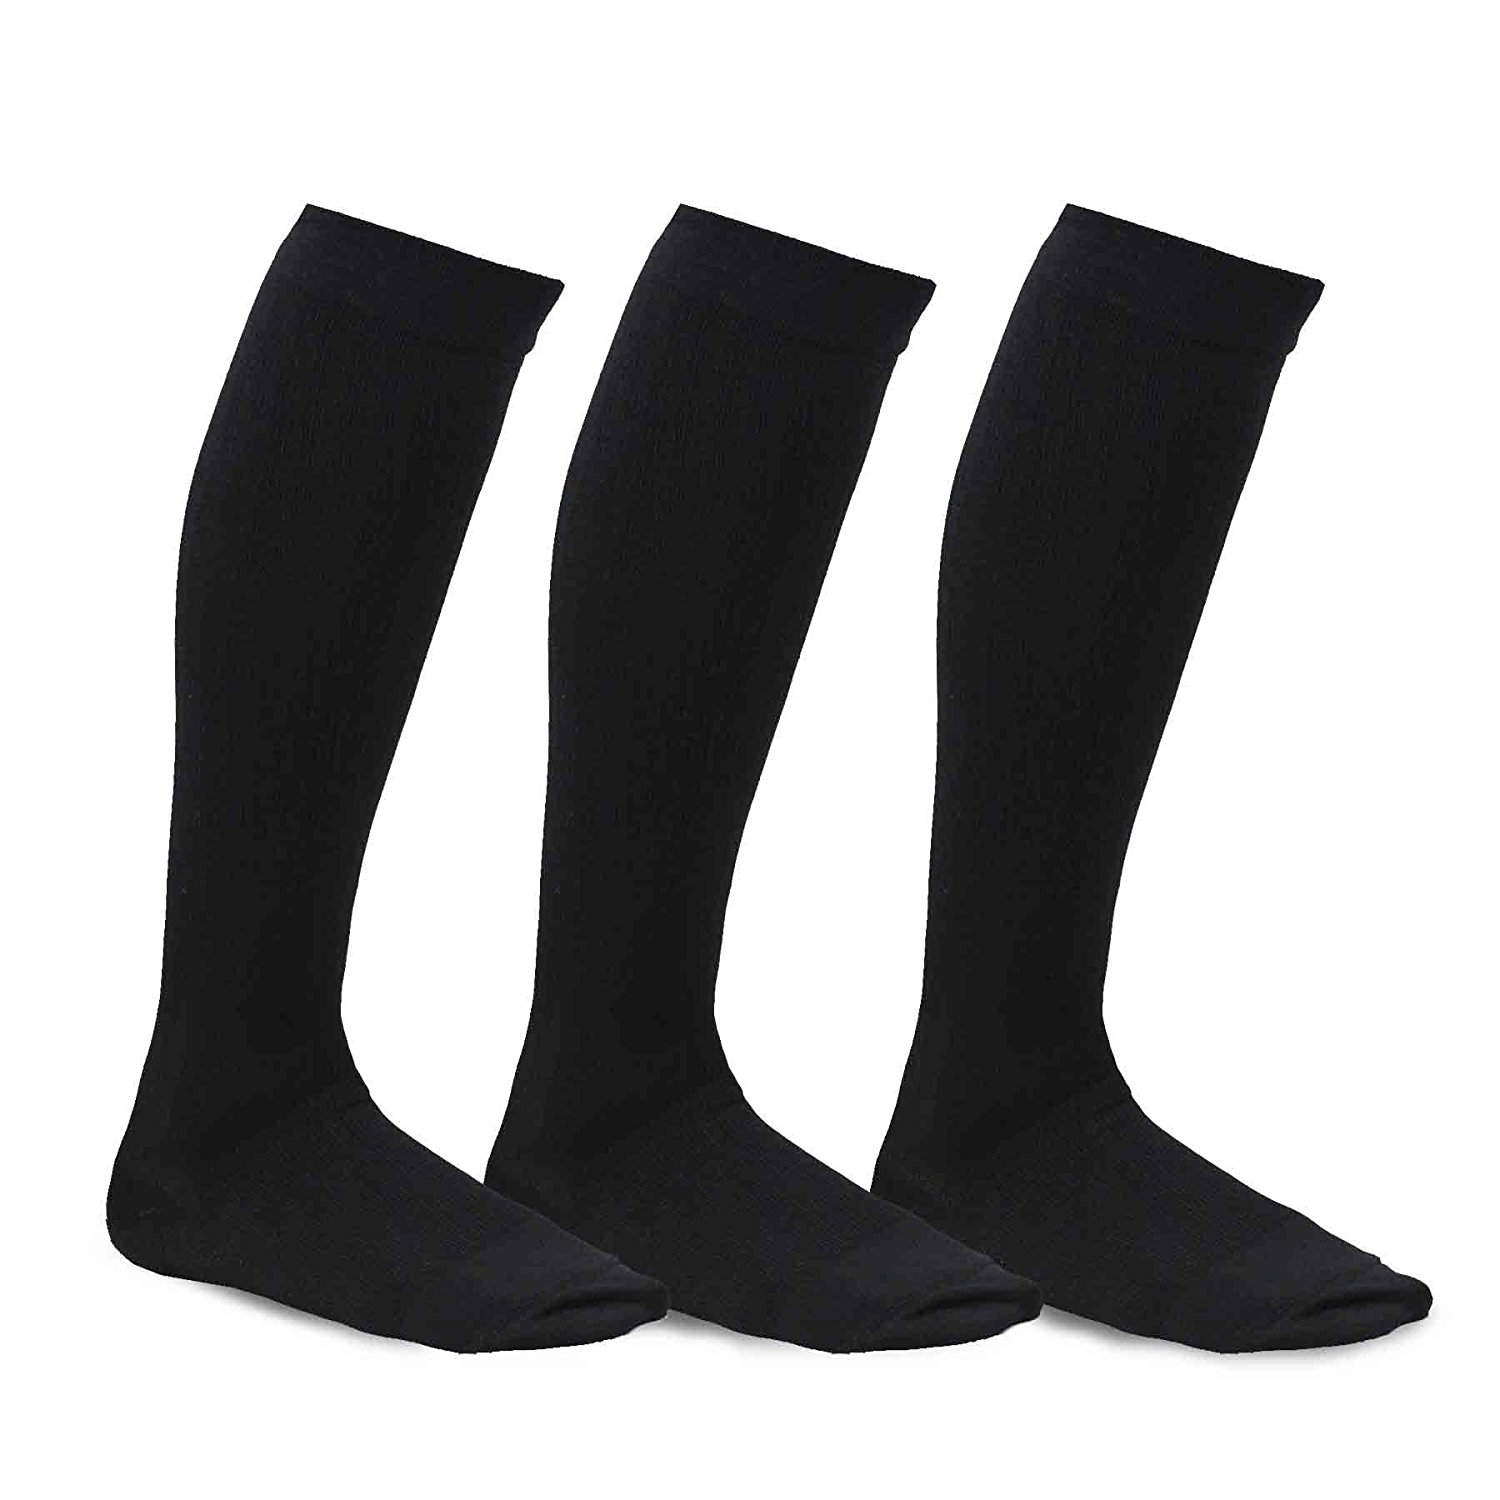 TeeHee Microfiber Compression Knee High Socks with Rib 3-Pack (Small (8-9), Black)